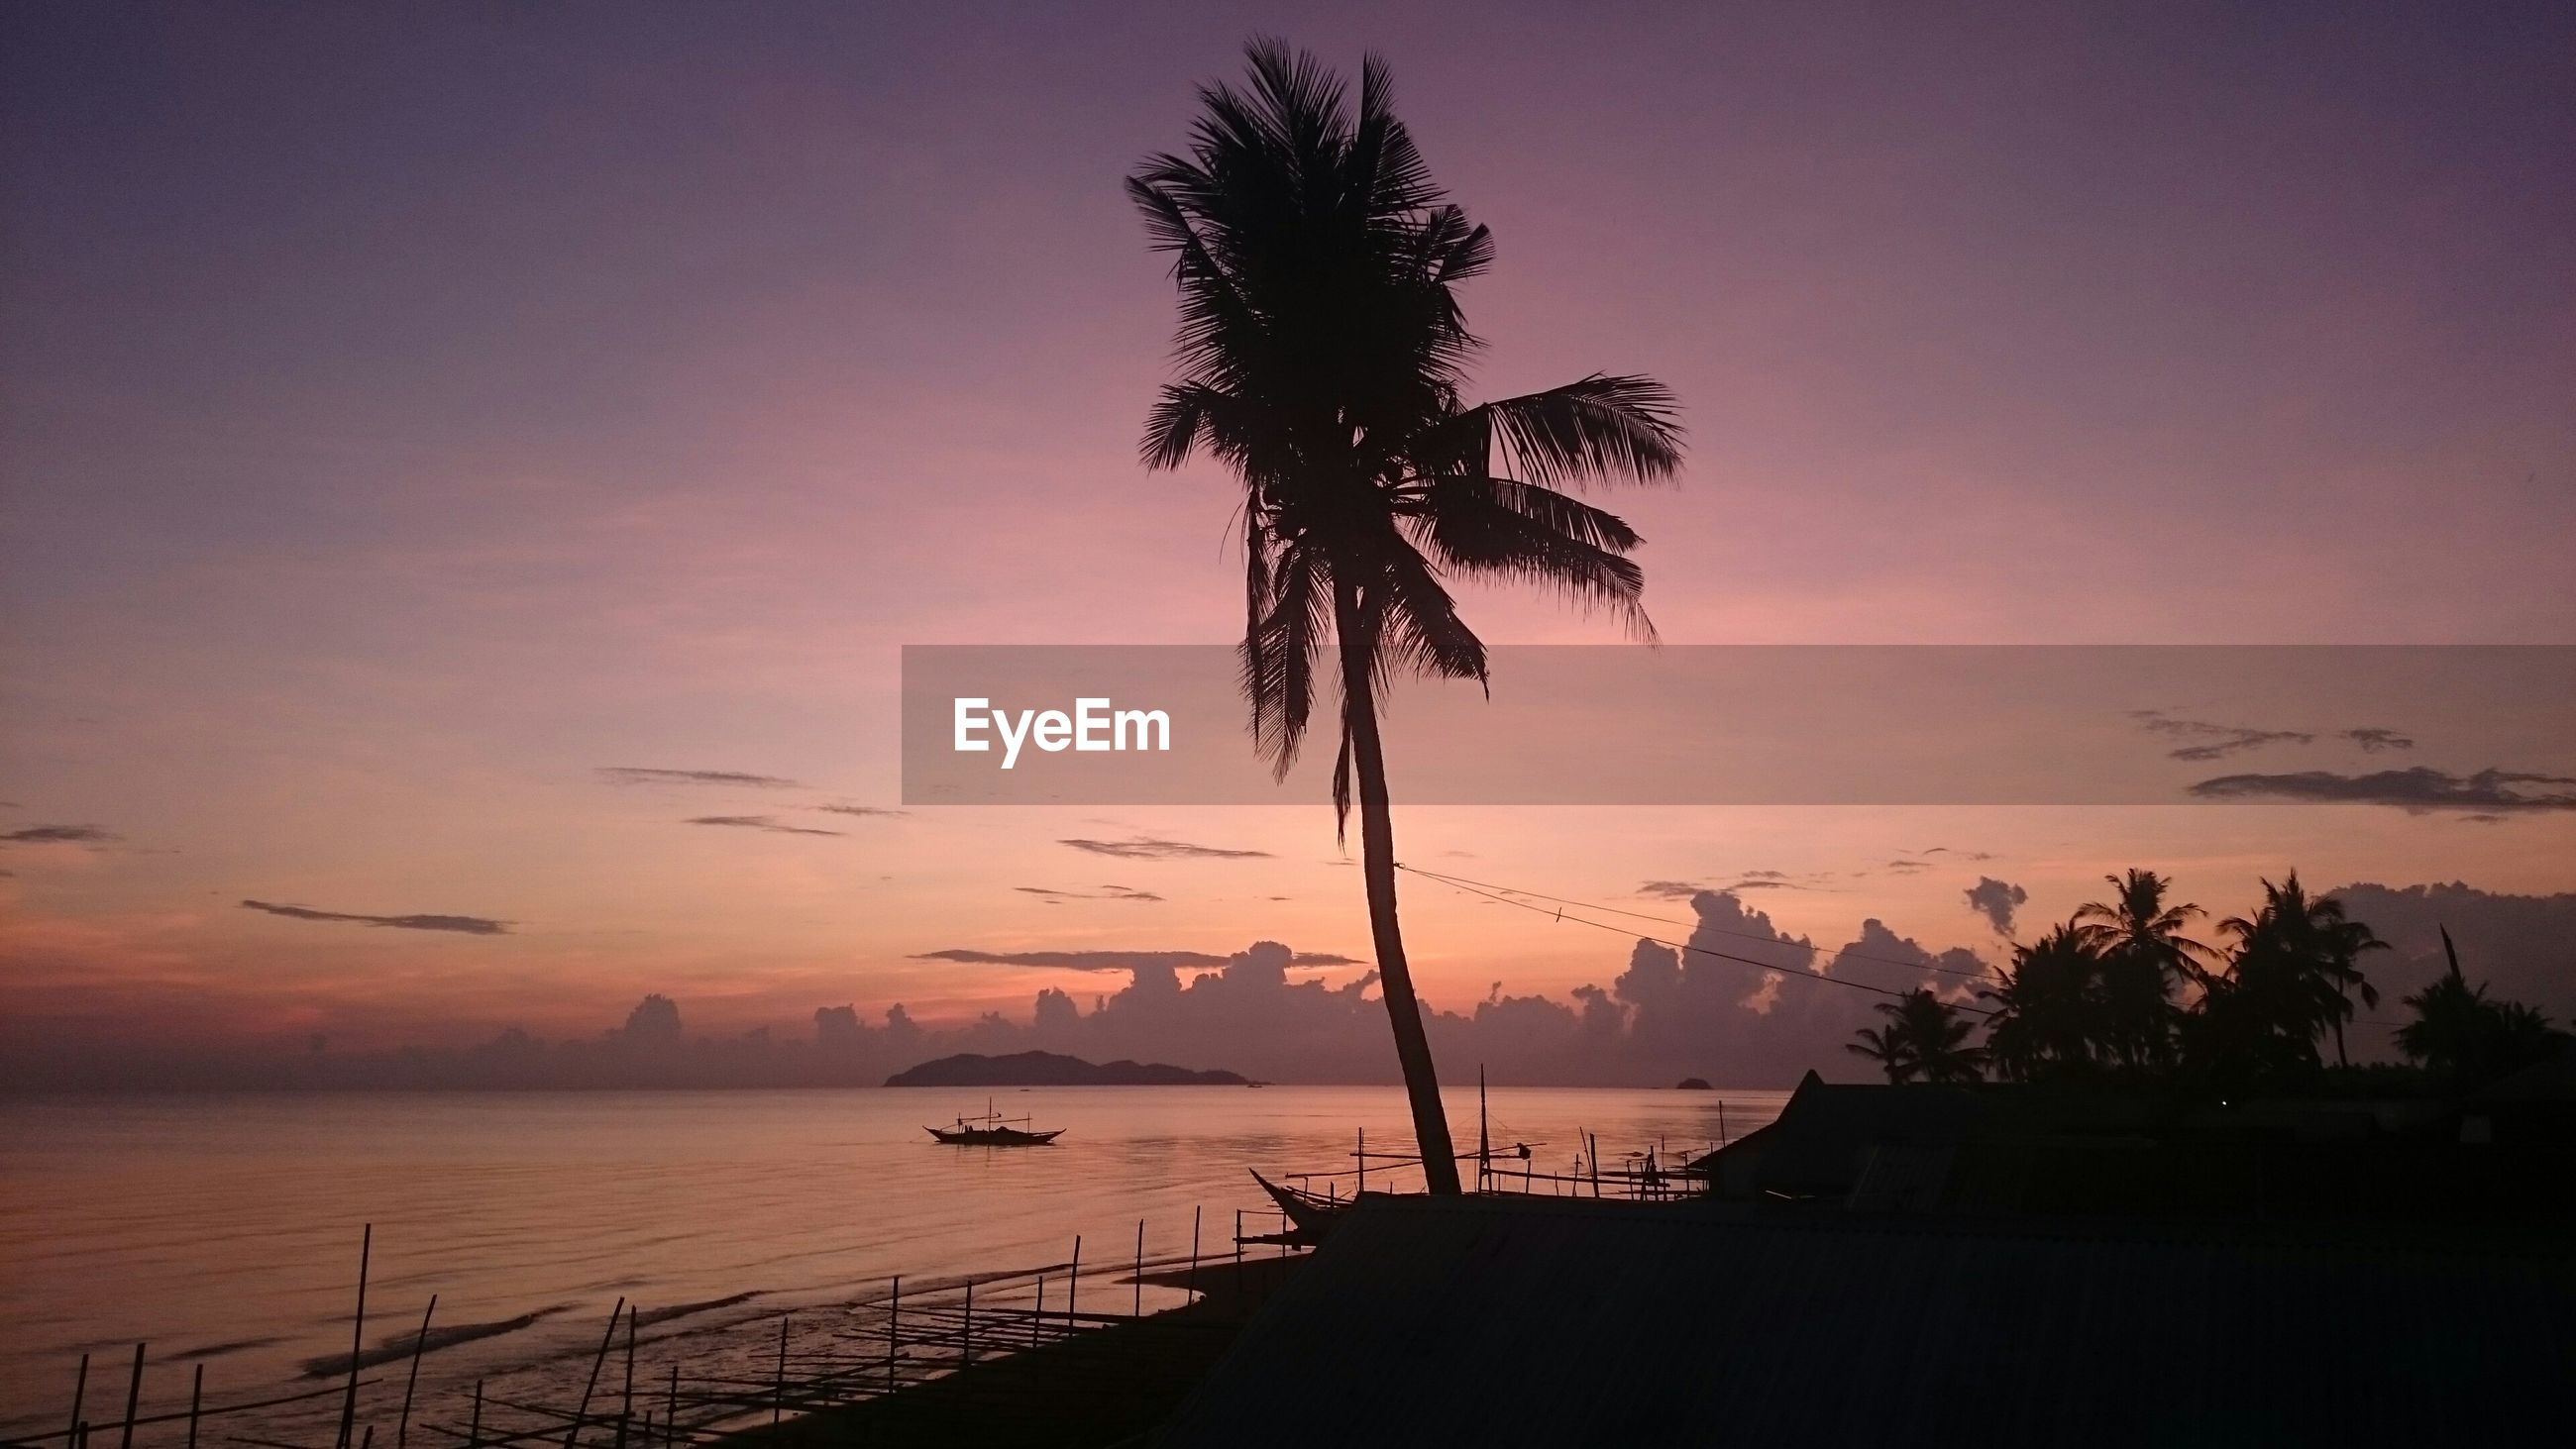 Low angle view of silhouette coconut palm tree by sea against sky at dusk